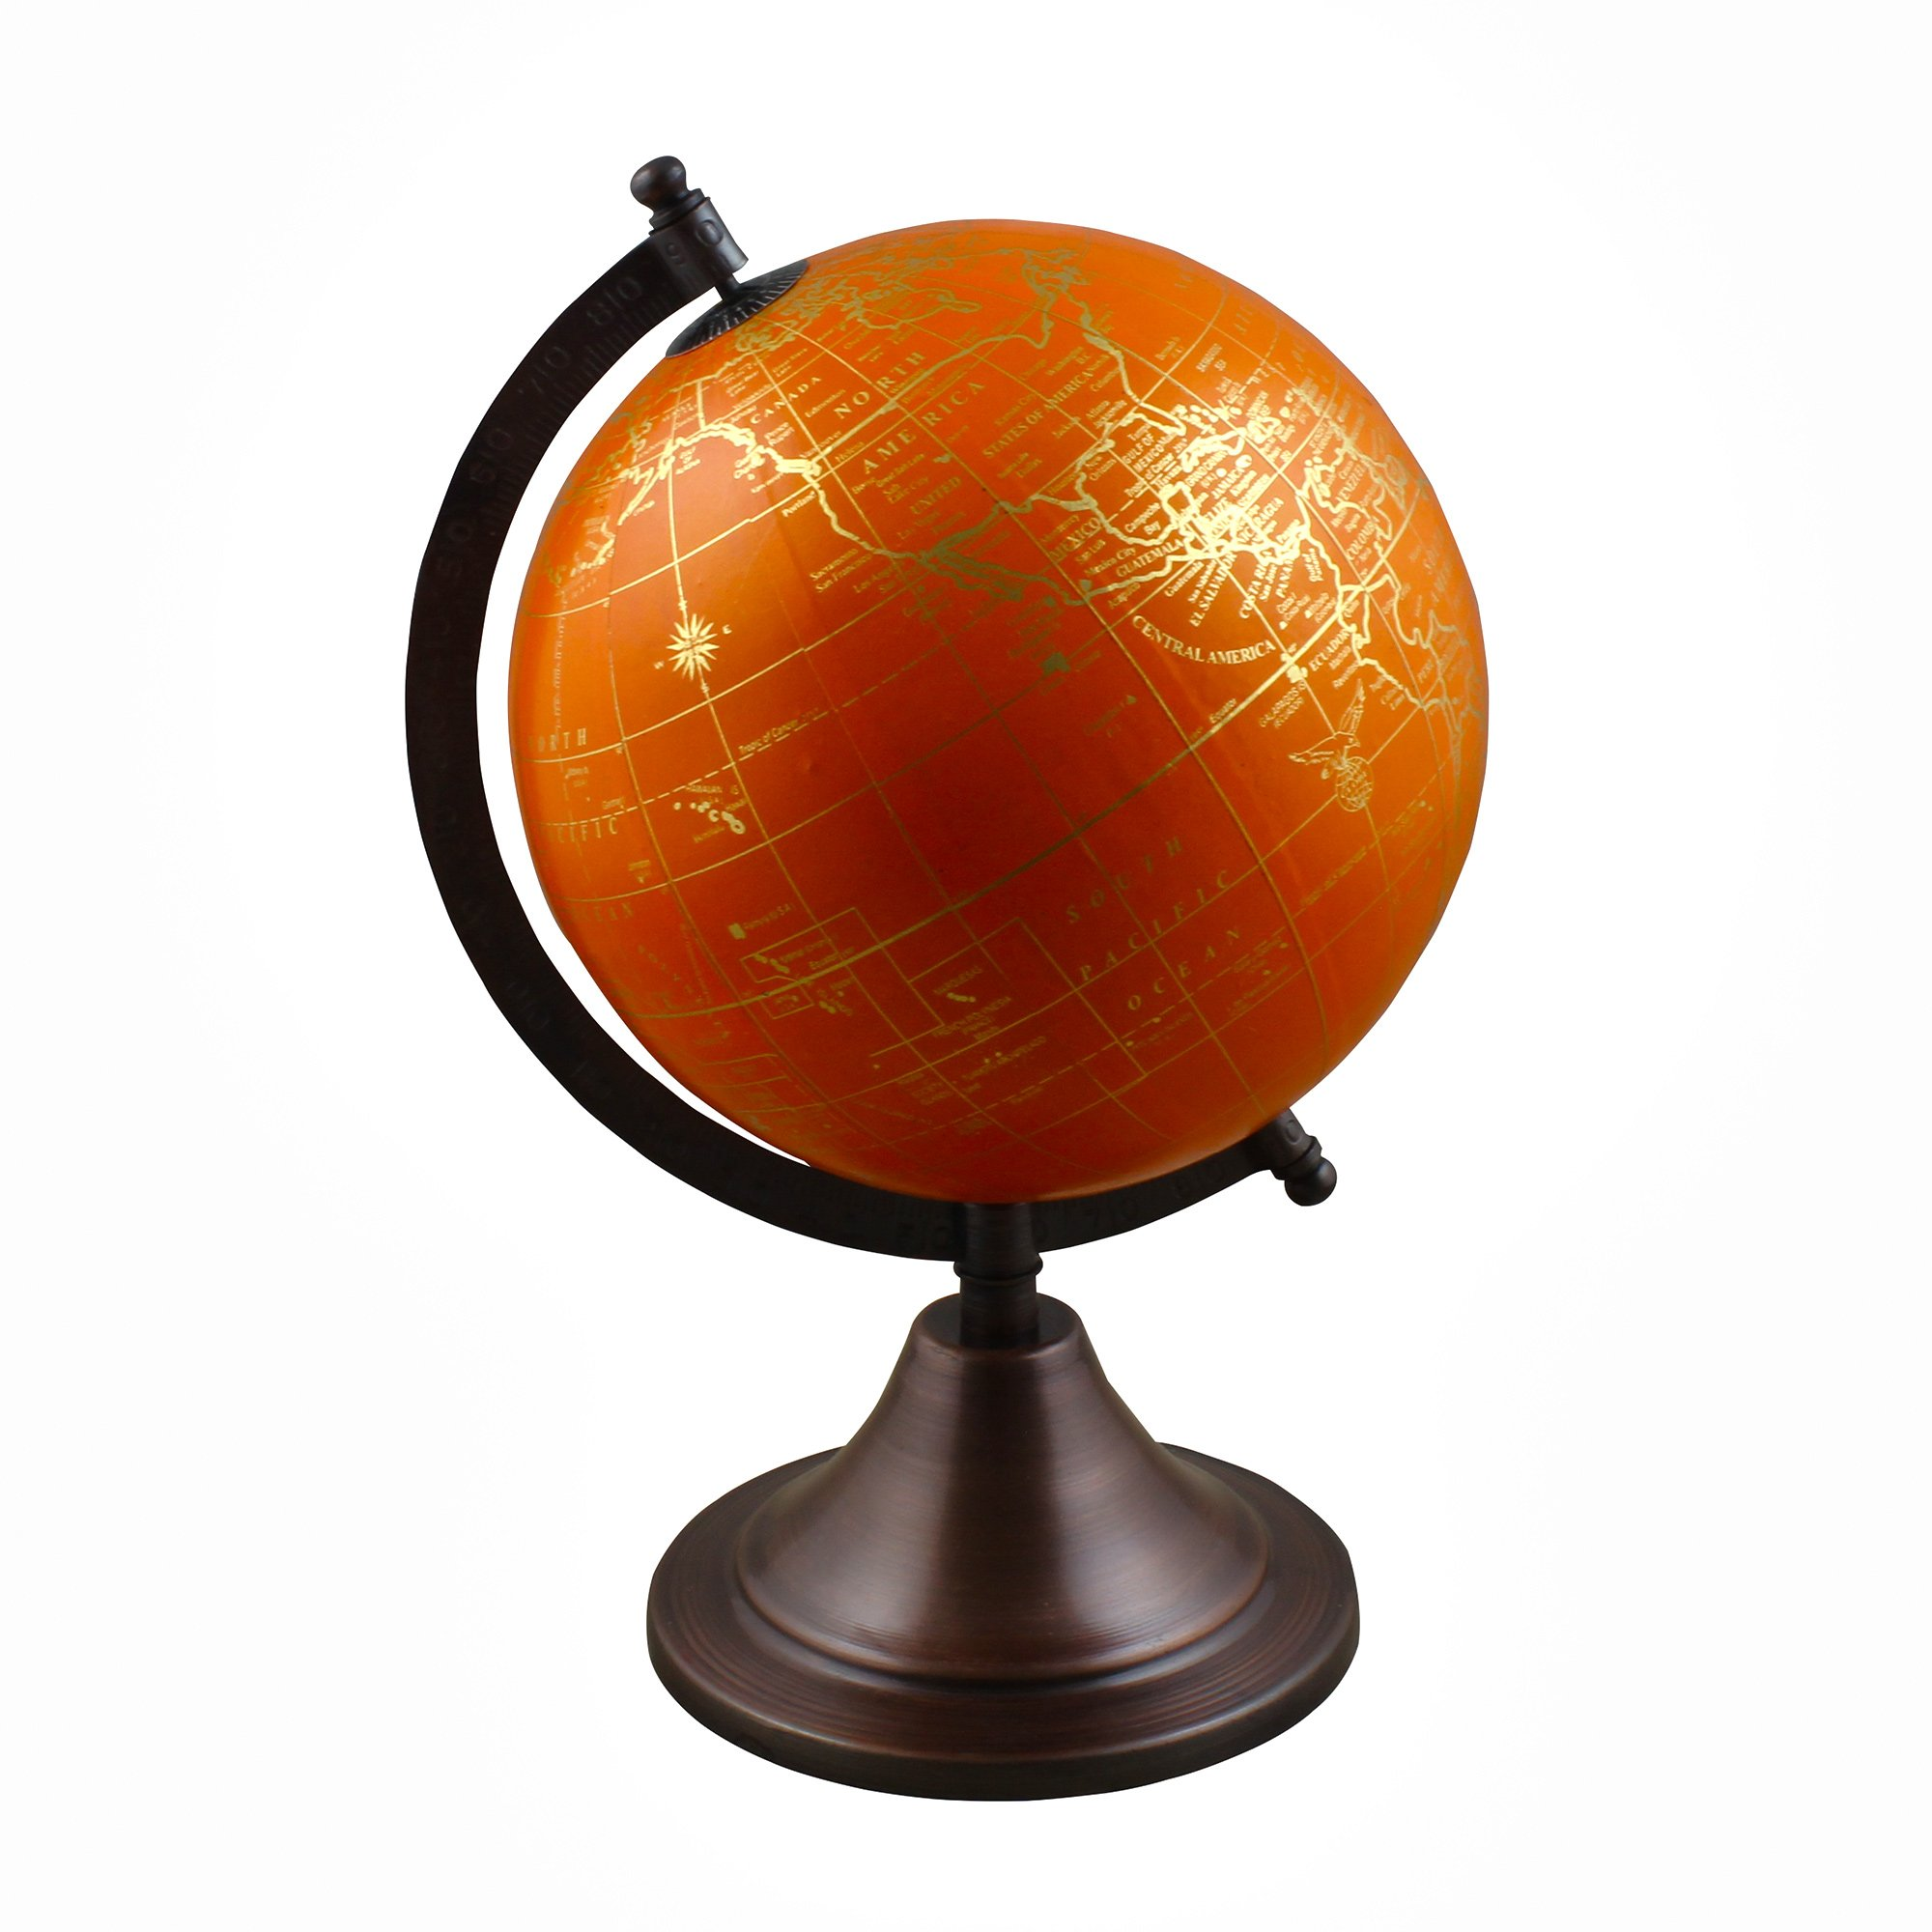 Stock Clearance Sale!! Spinning World Globe with Stand Learning Resources for Teachers, Table Décor, Office & School, 10.5 Inches